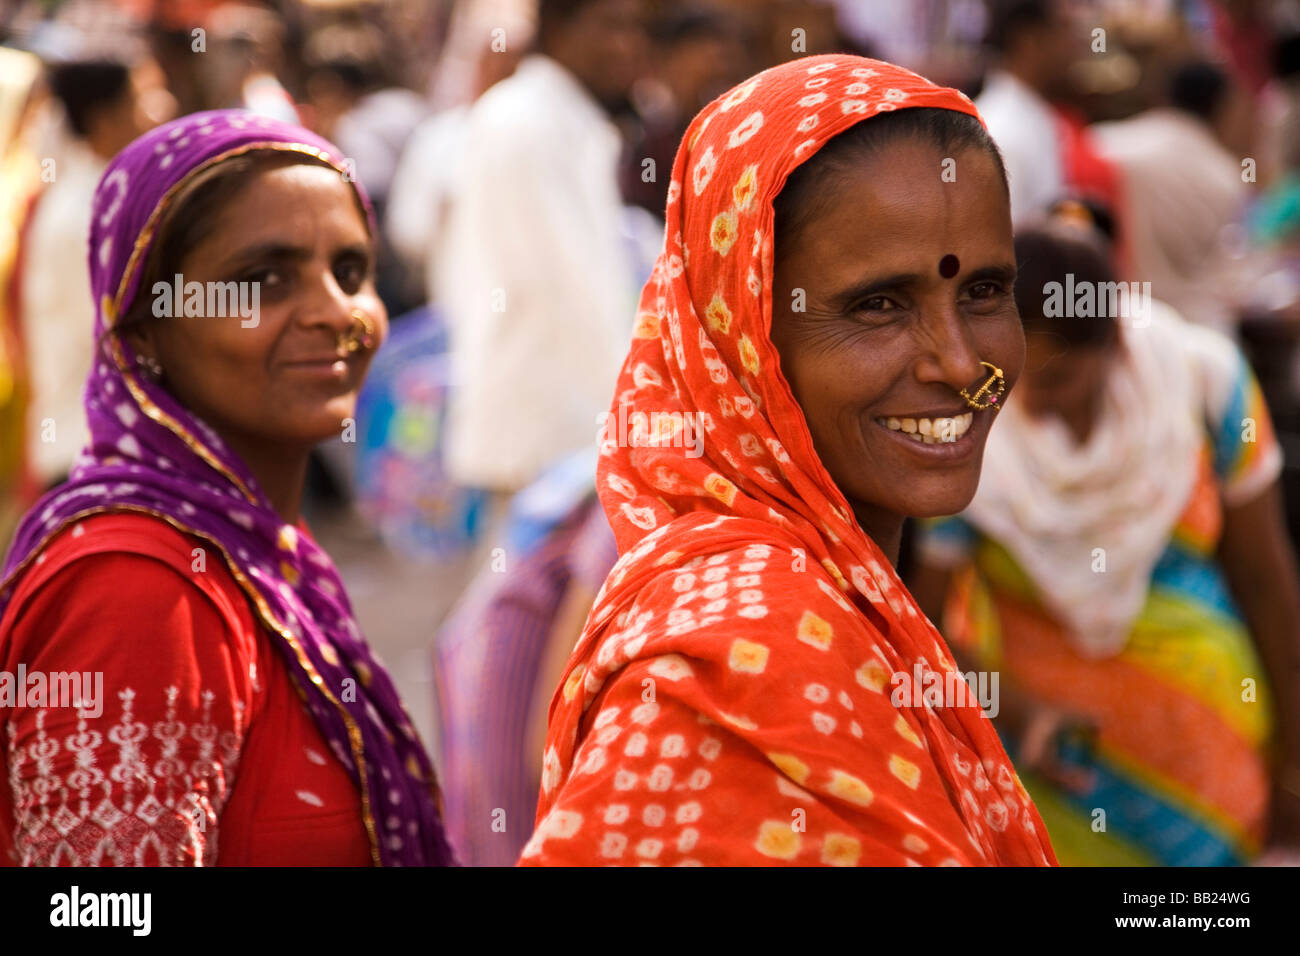 Two colourfully dressed women stand together in a market in the old city of Ahmedabad, Gujarat - Stock Image